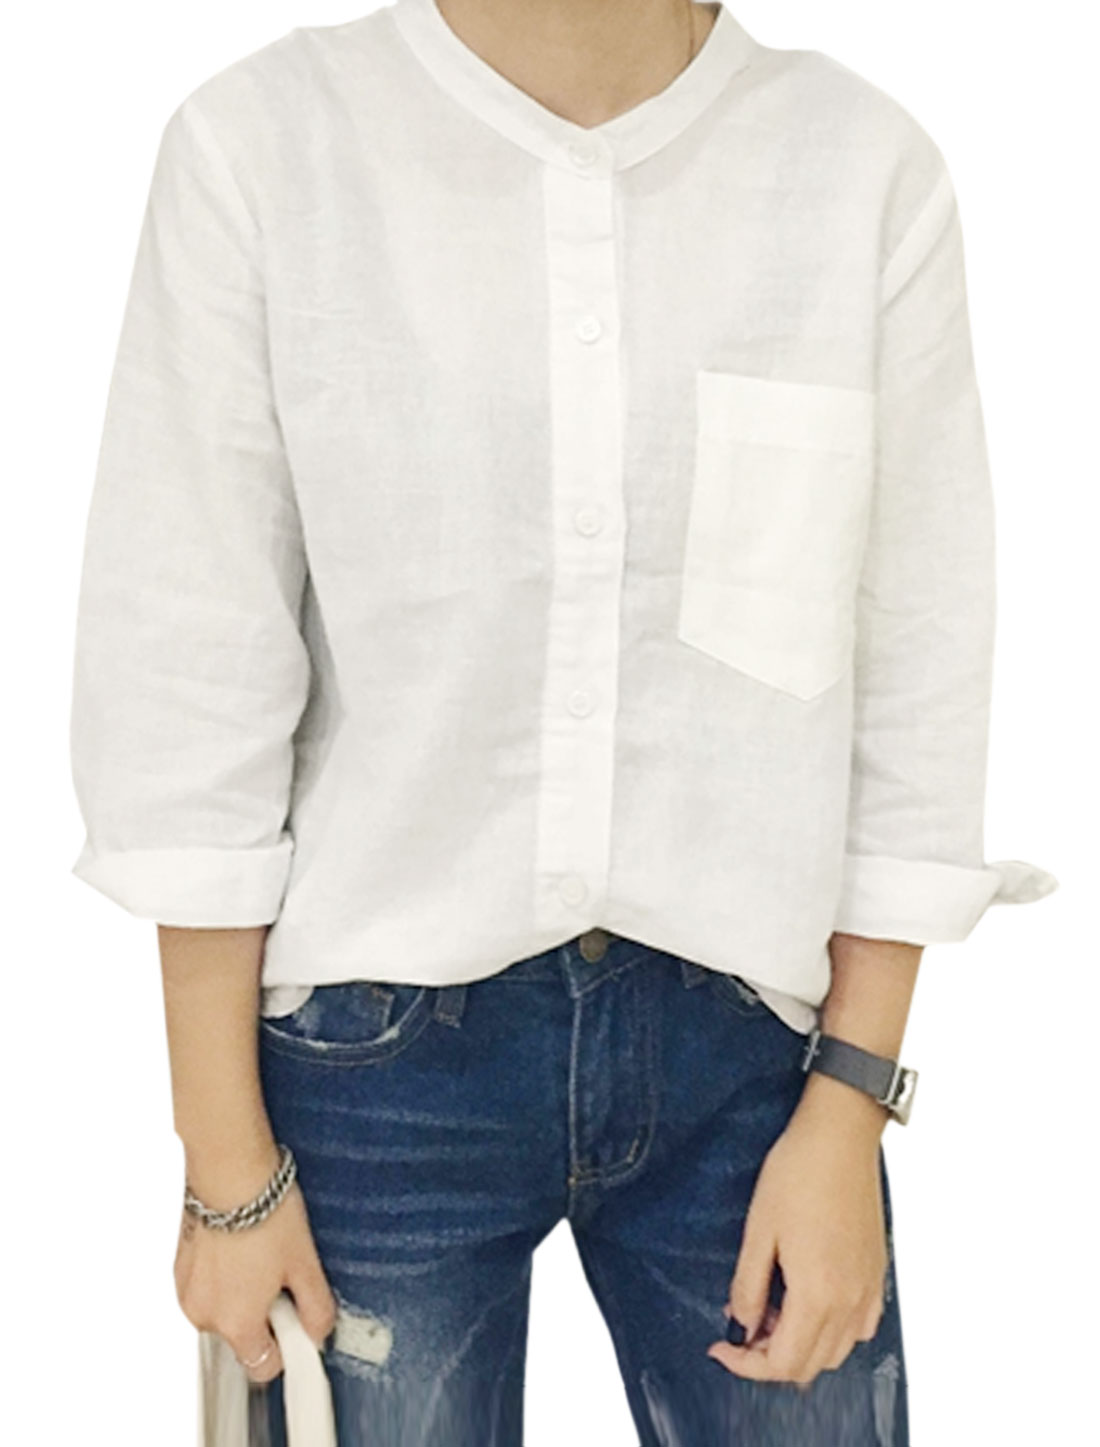 Women Stand Collar Single Breasted Chest Pocket Button Down Shirt White XS